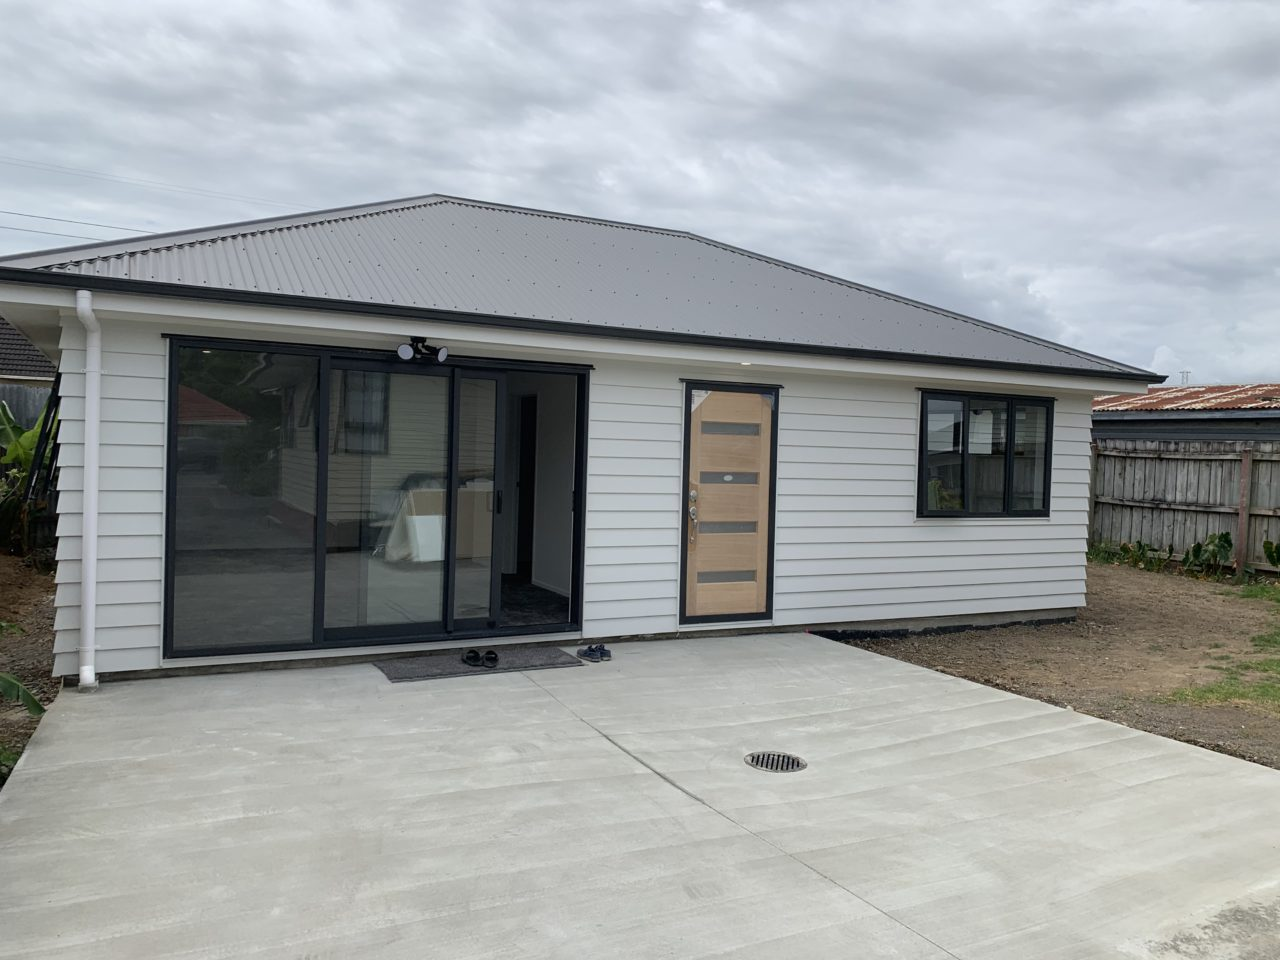 https://completehomerenovations.co.nz/wp-content/uploads/2020/02/IMG_2589-1280x960.jpg